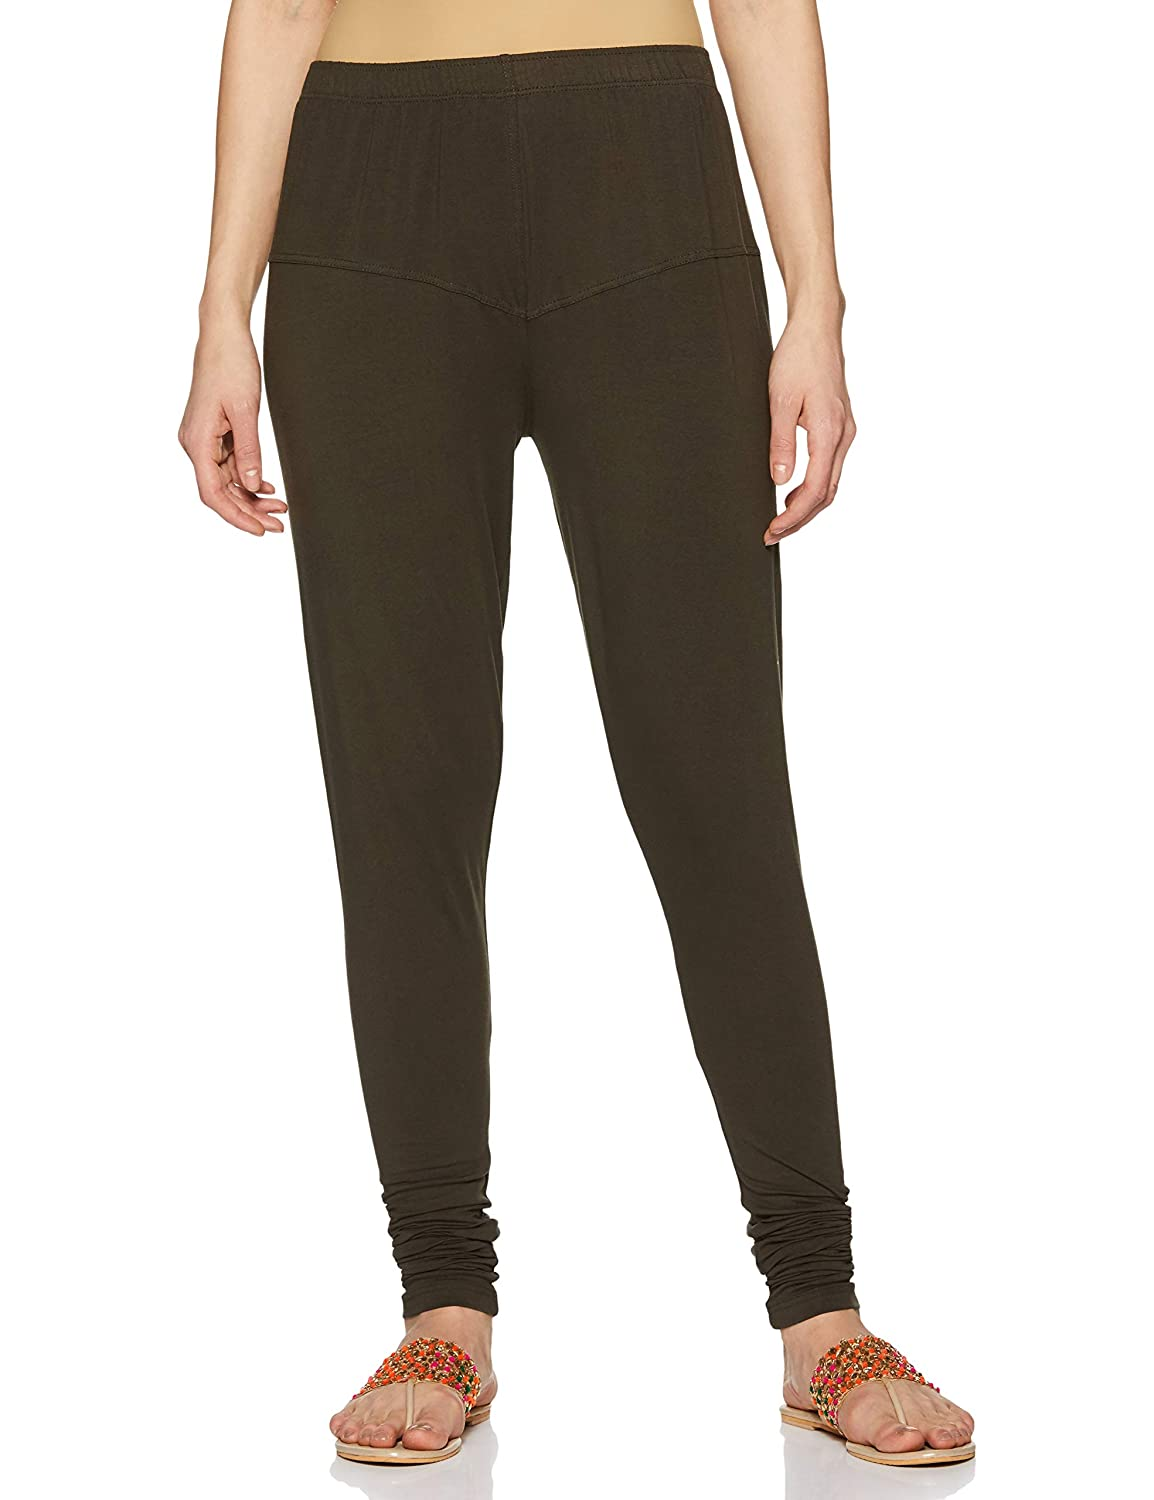 LUX LYRA Women's Leggings Silk_81_Olive_Free Size